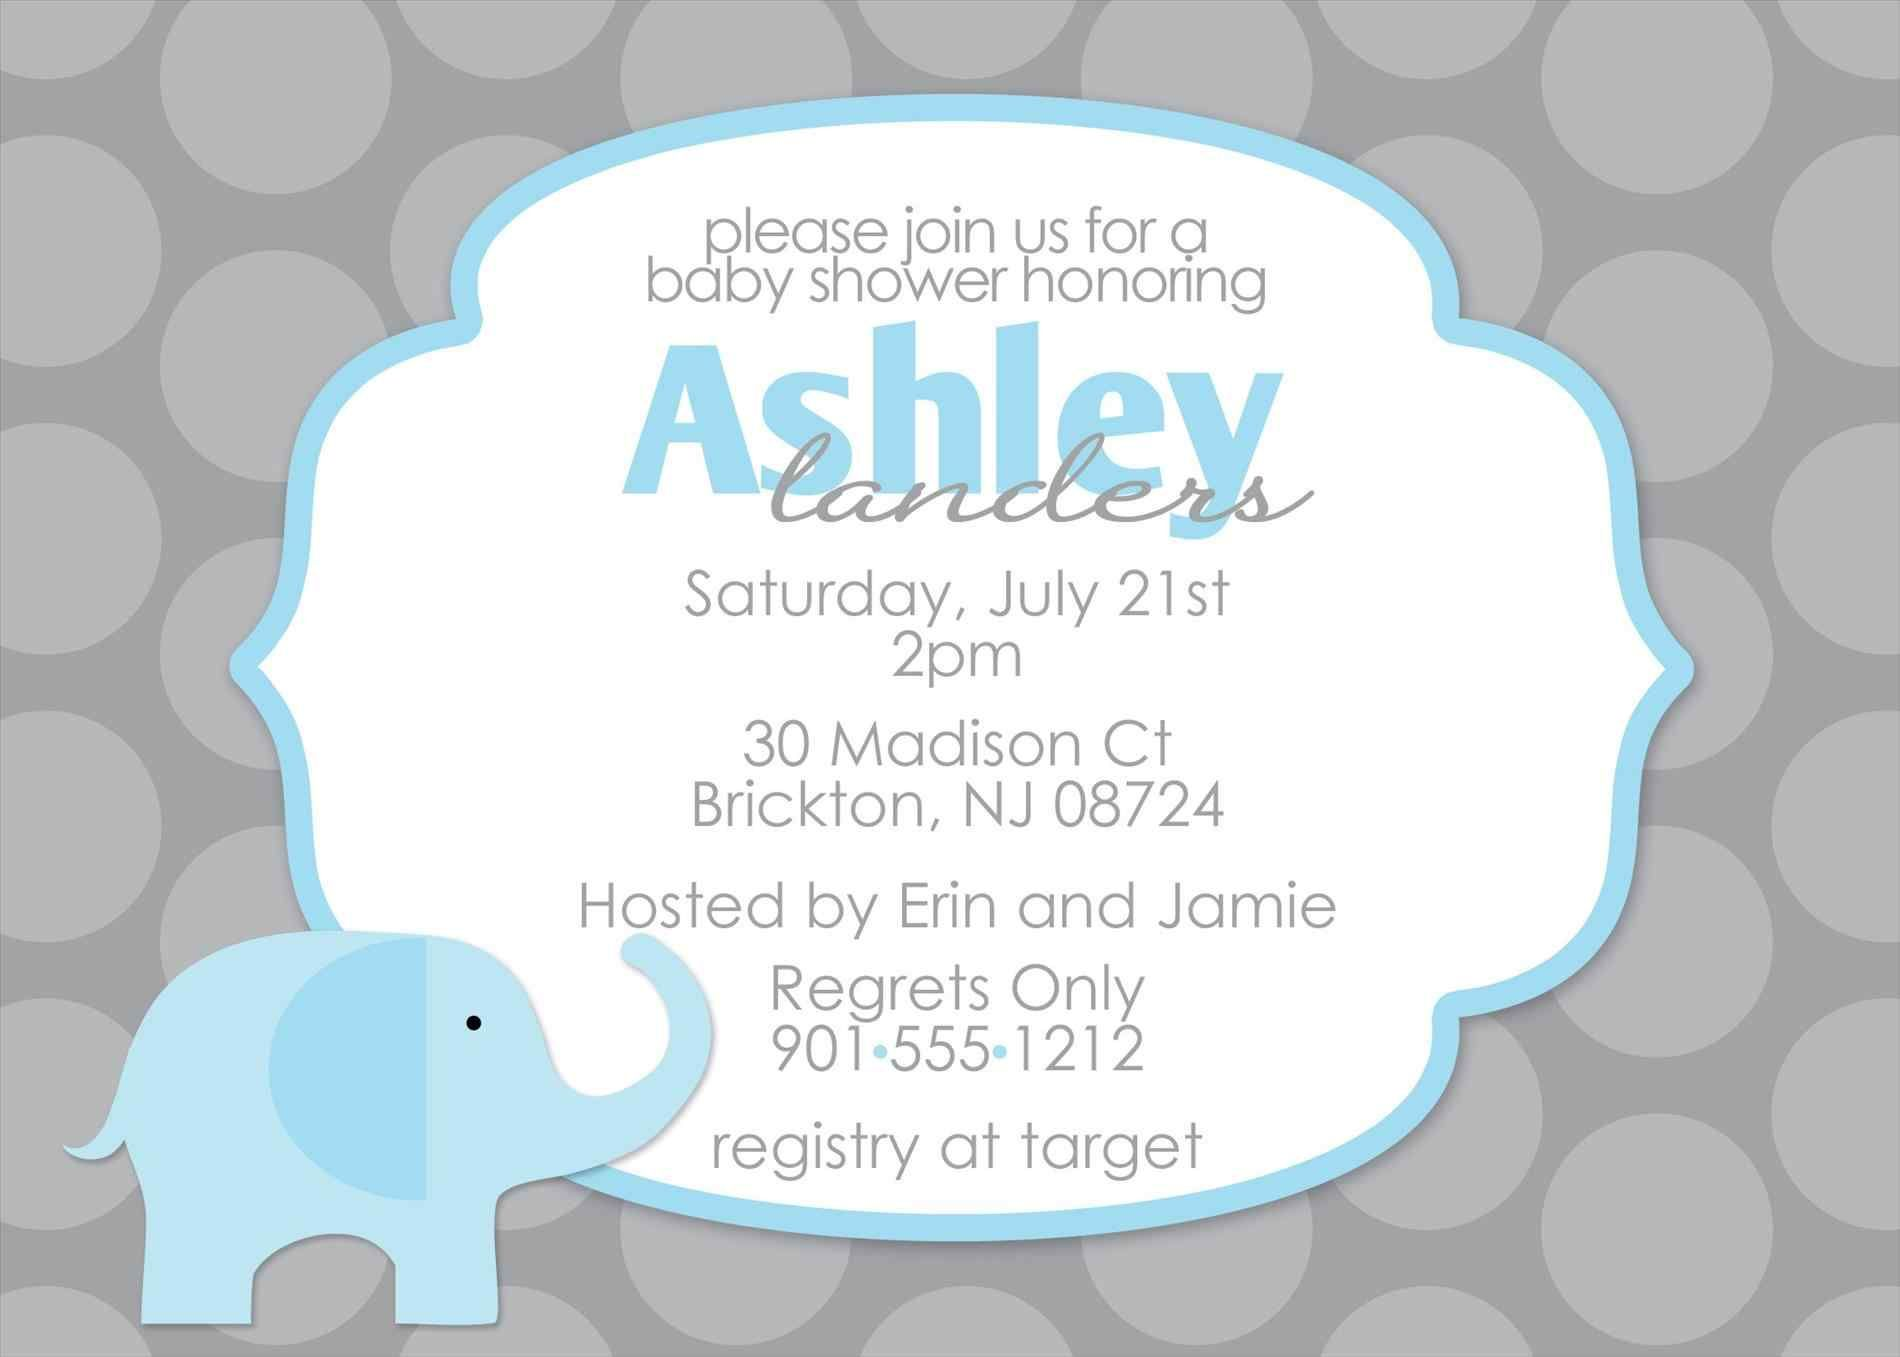 Baby Shower Powerpoint Templates Baby Shower Invitations Baby Shower Invitations For Boys Elephant Baby Shower Invitations